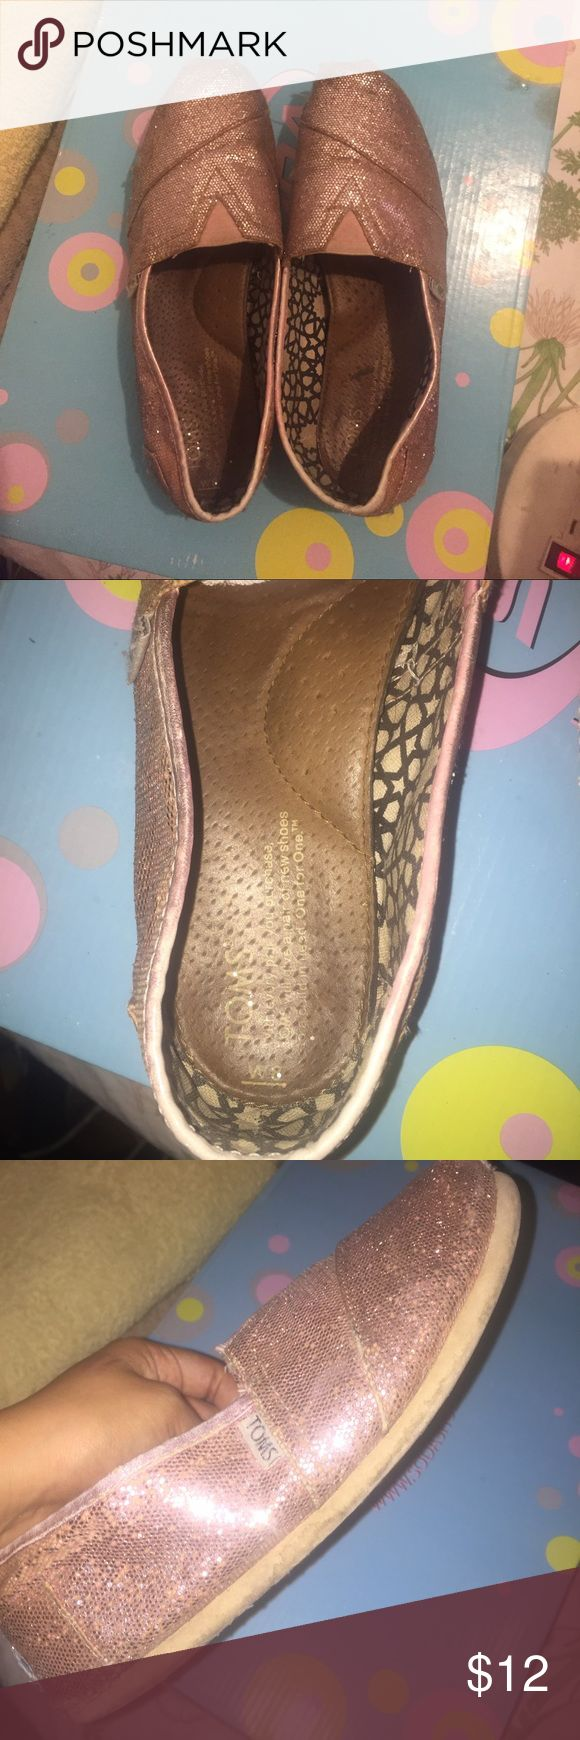 Pink glitter toms Few tears in the front. Insides are still good. Obvious signs of wear. TOMS Shoes Slippers